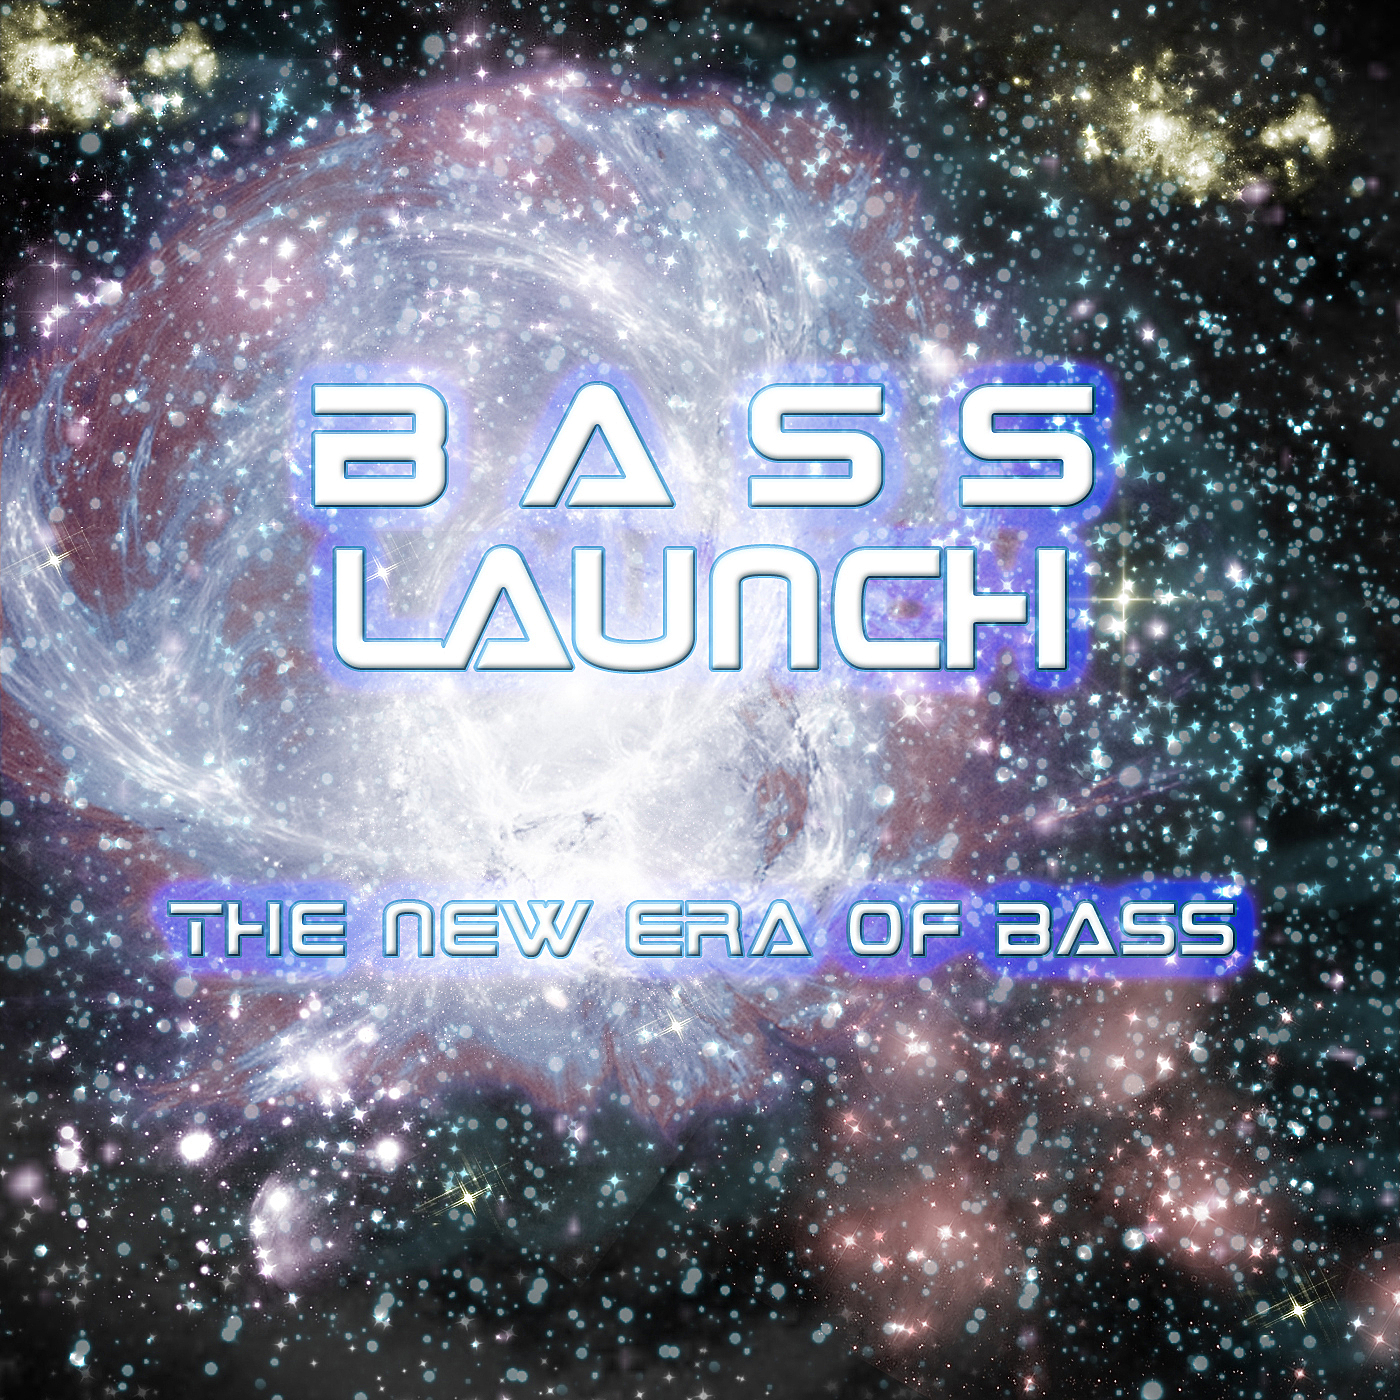 Welcome 2 Bass